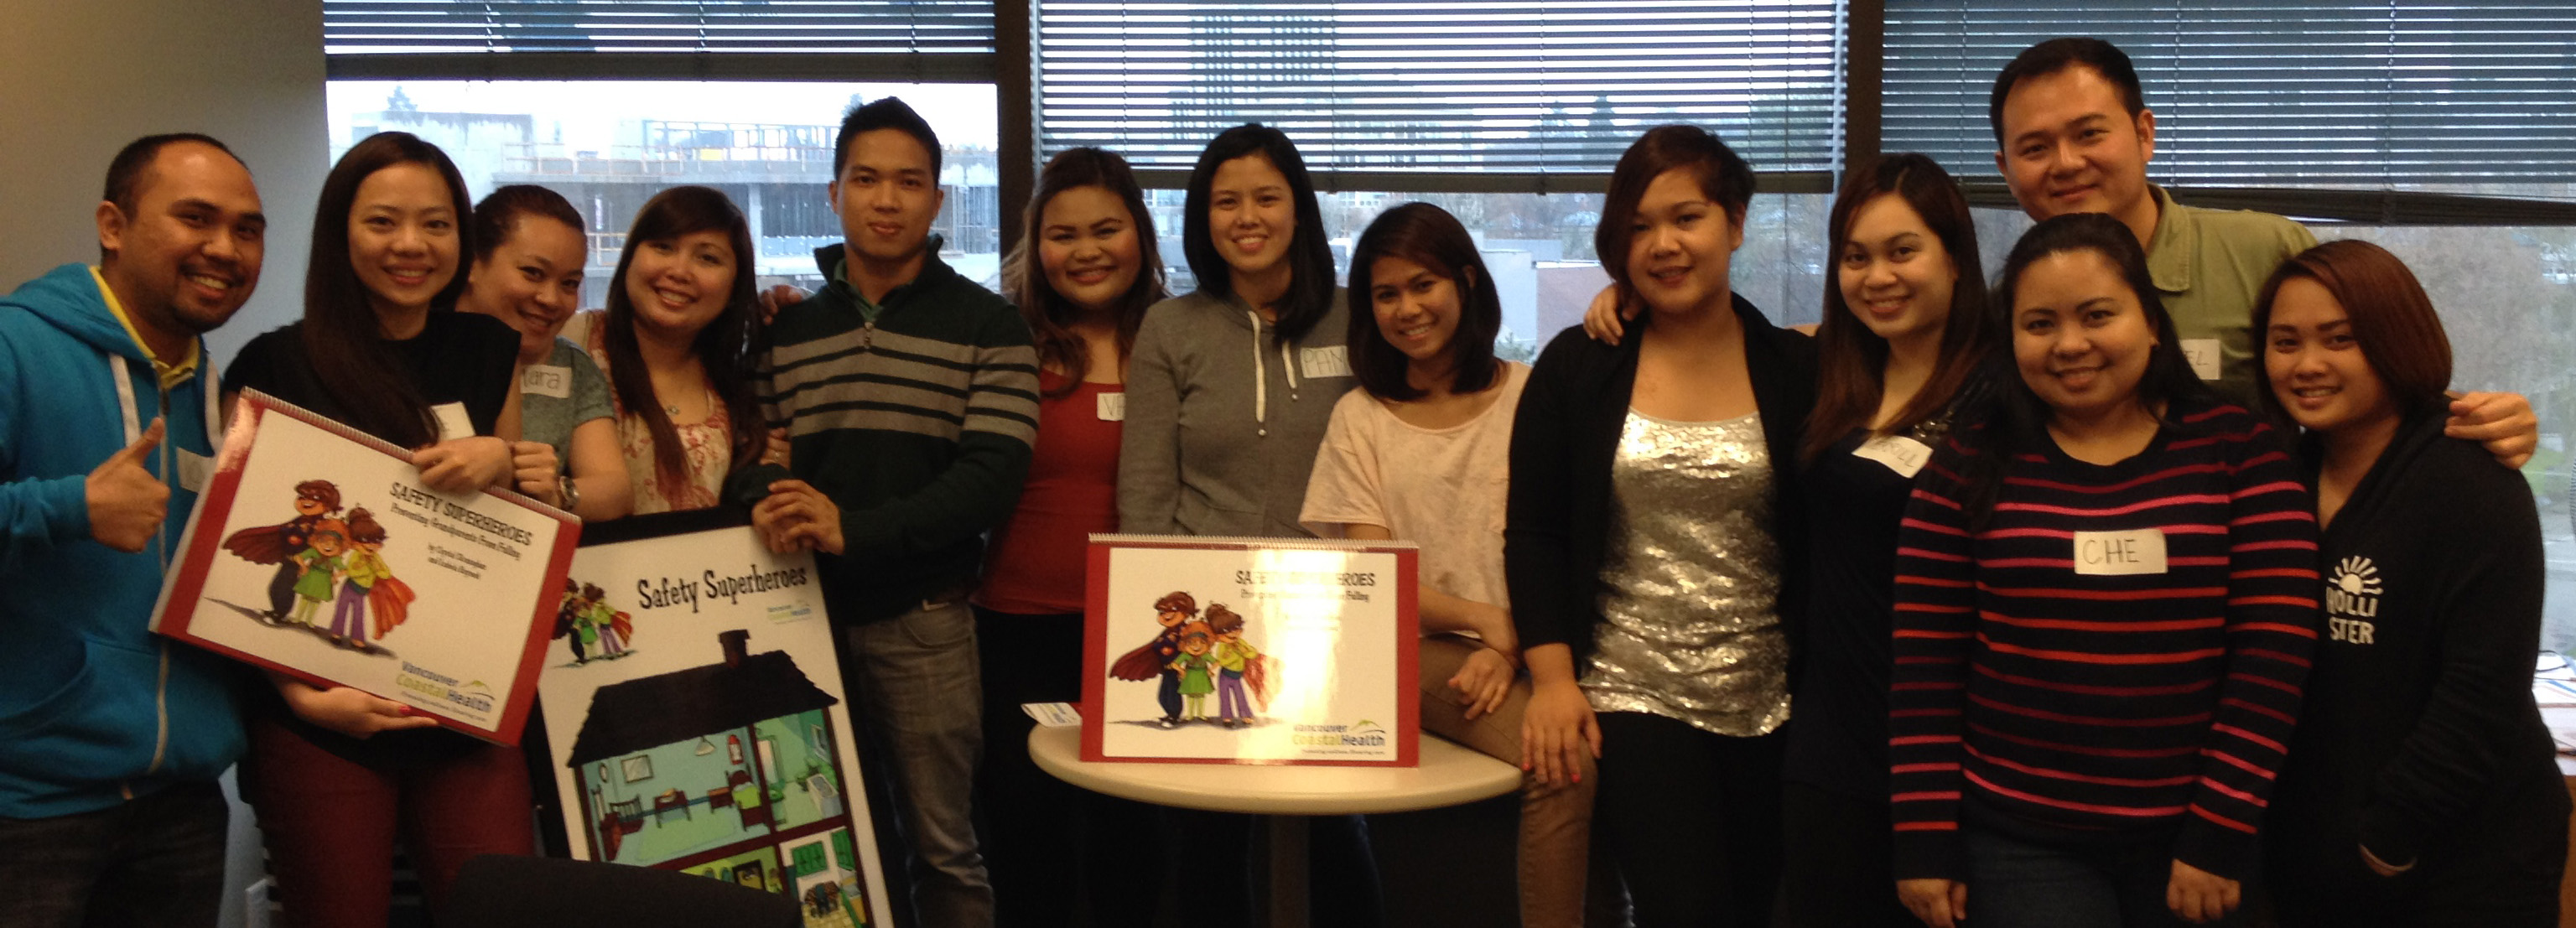 A new batch of Safety Superheroes volunteers in Richmond, BC